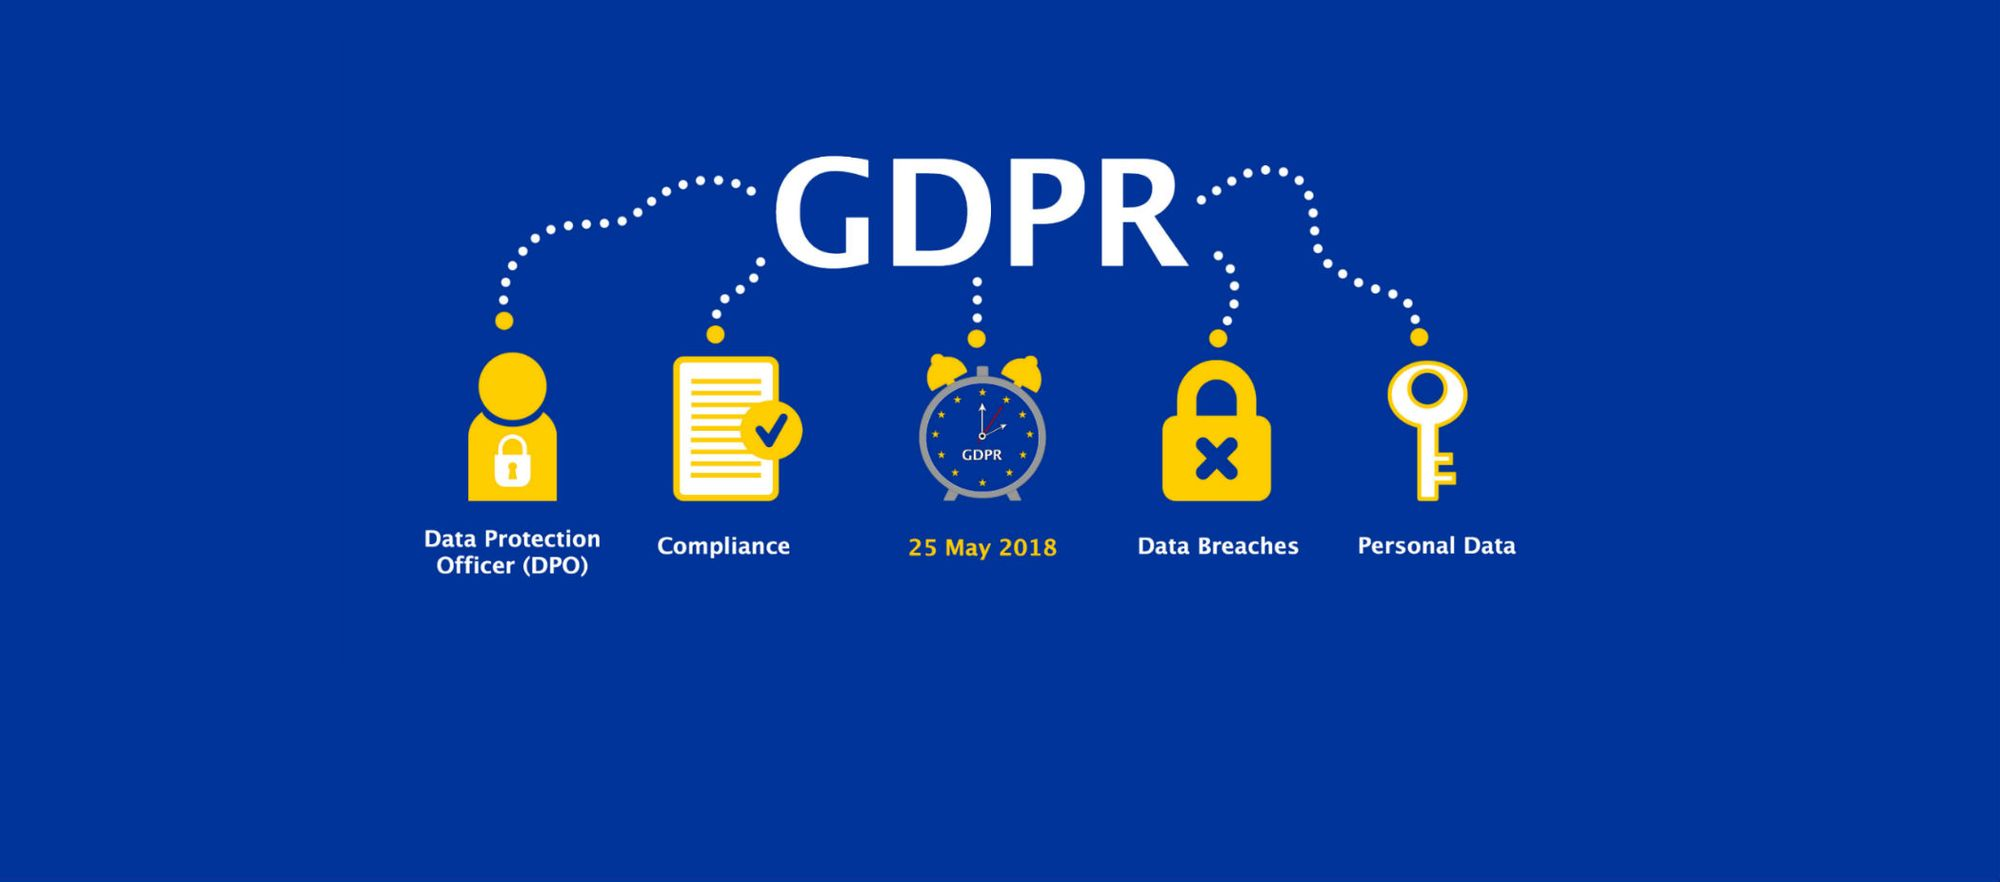 GDPR Glossary of Terms